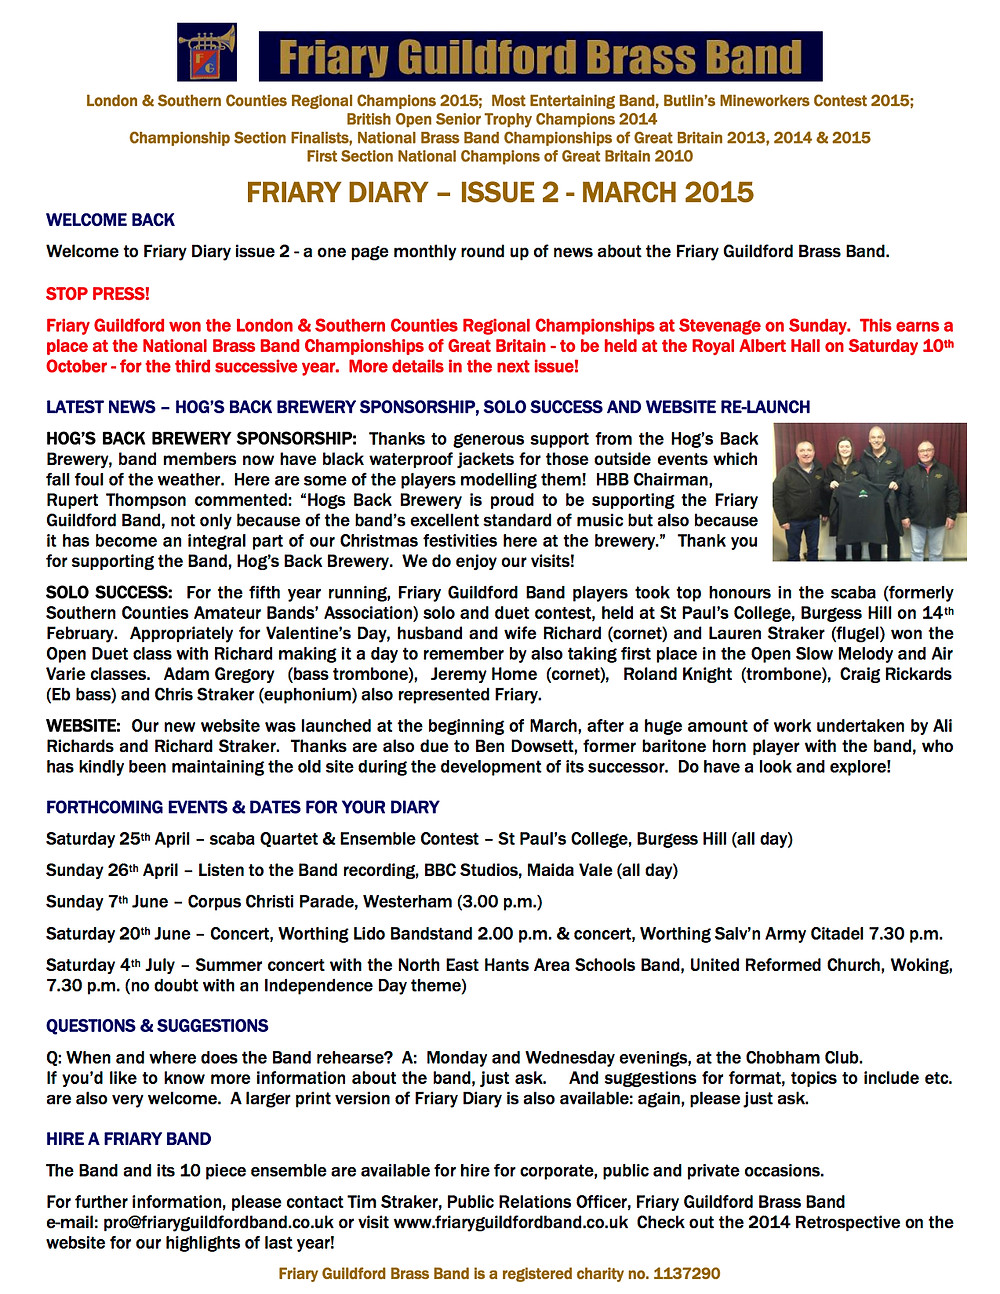 Friary Diary issue 2 March 2015.jpg